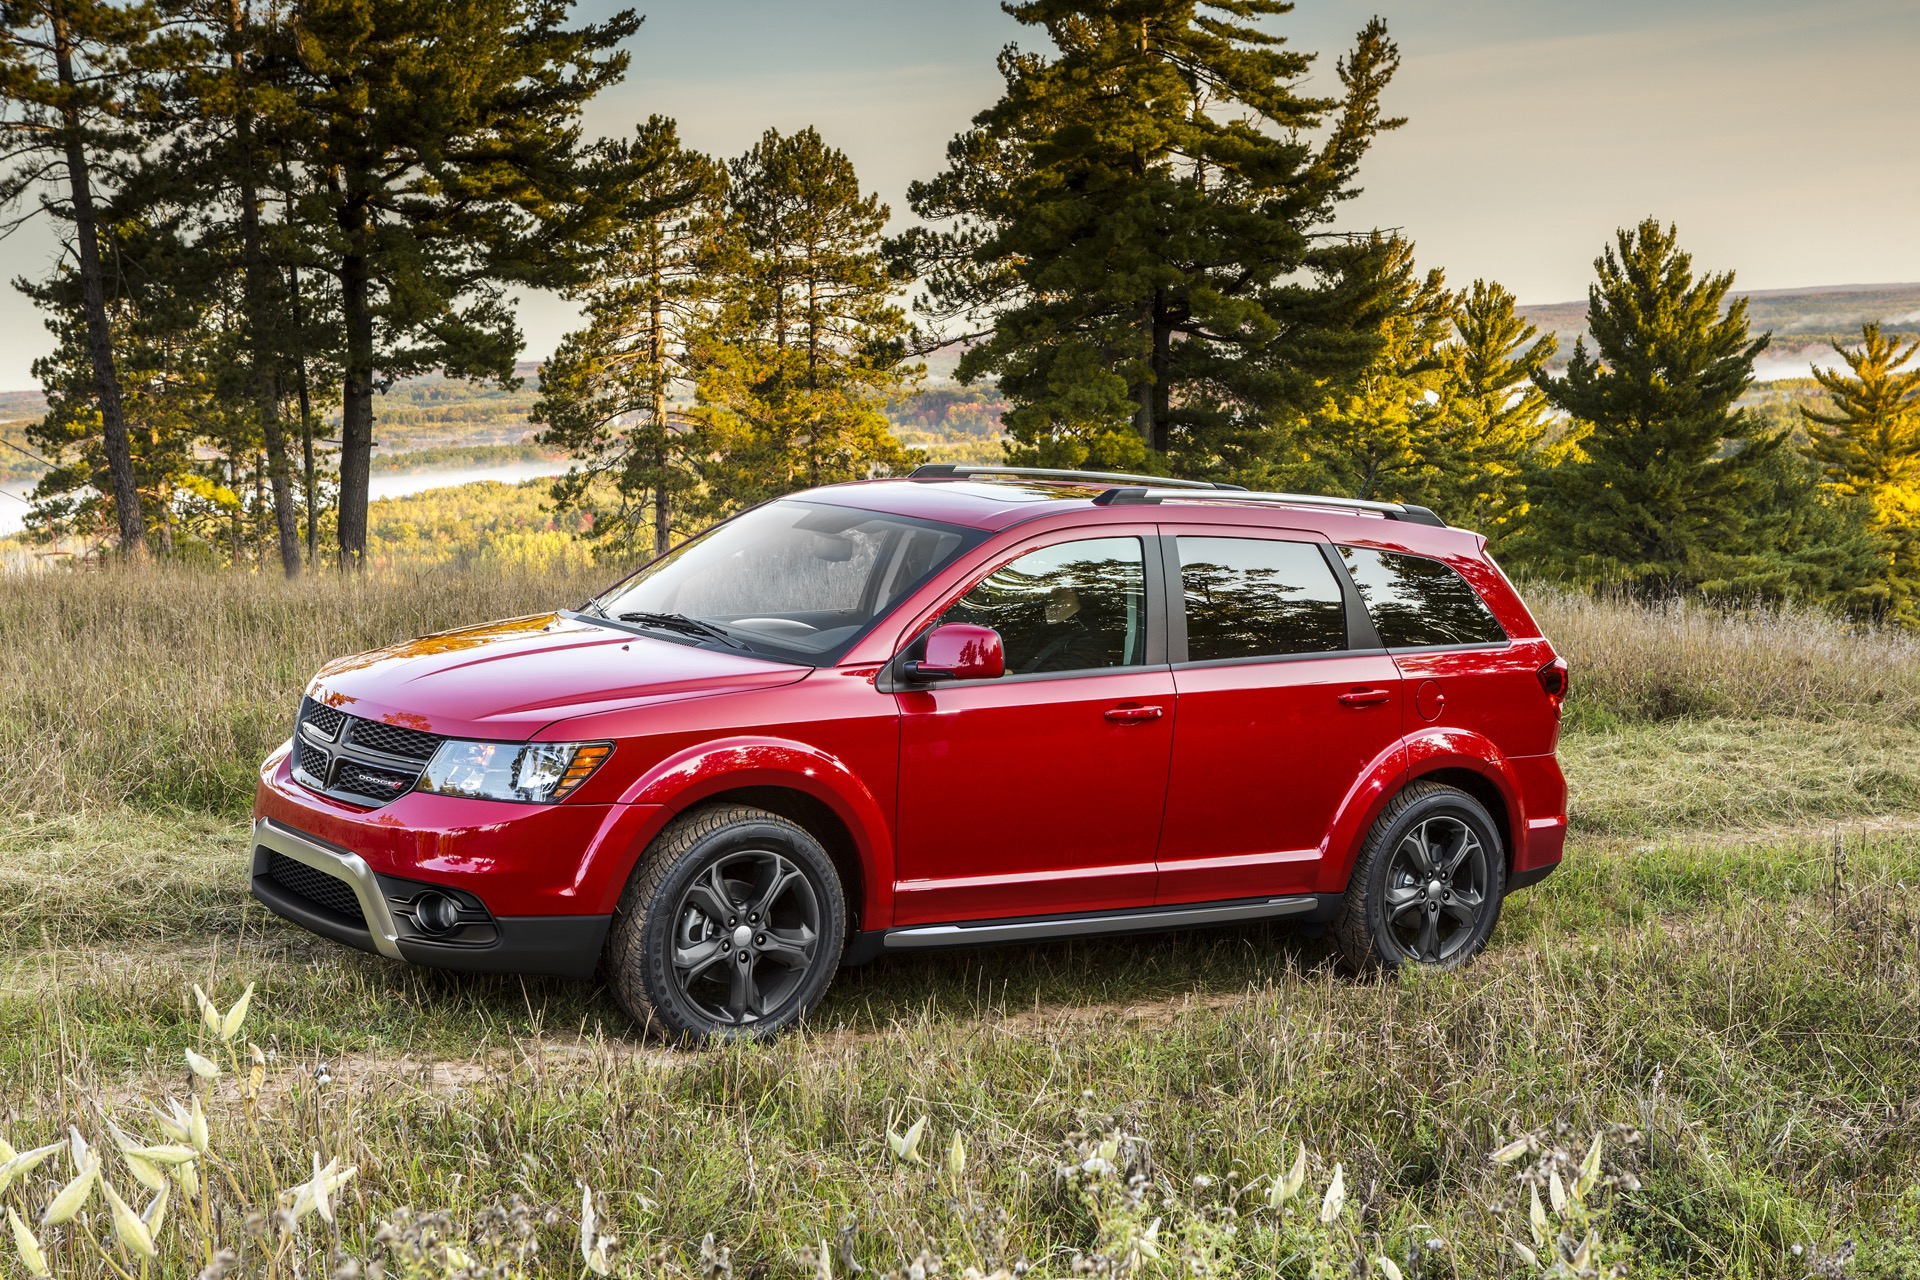 2016 Dodge Journey Gas Mileage The Car Connection